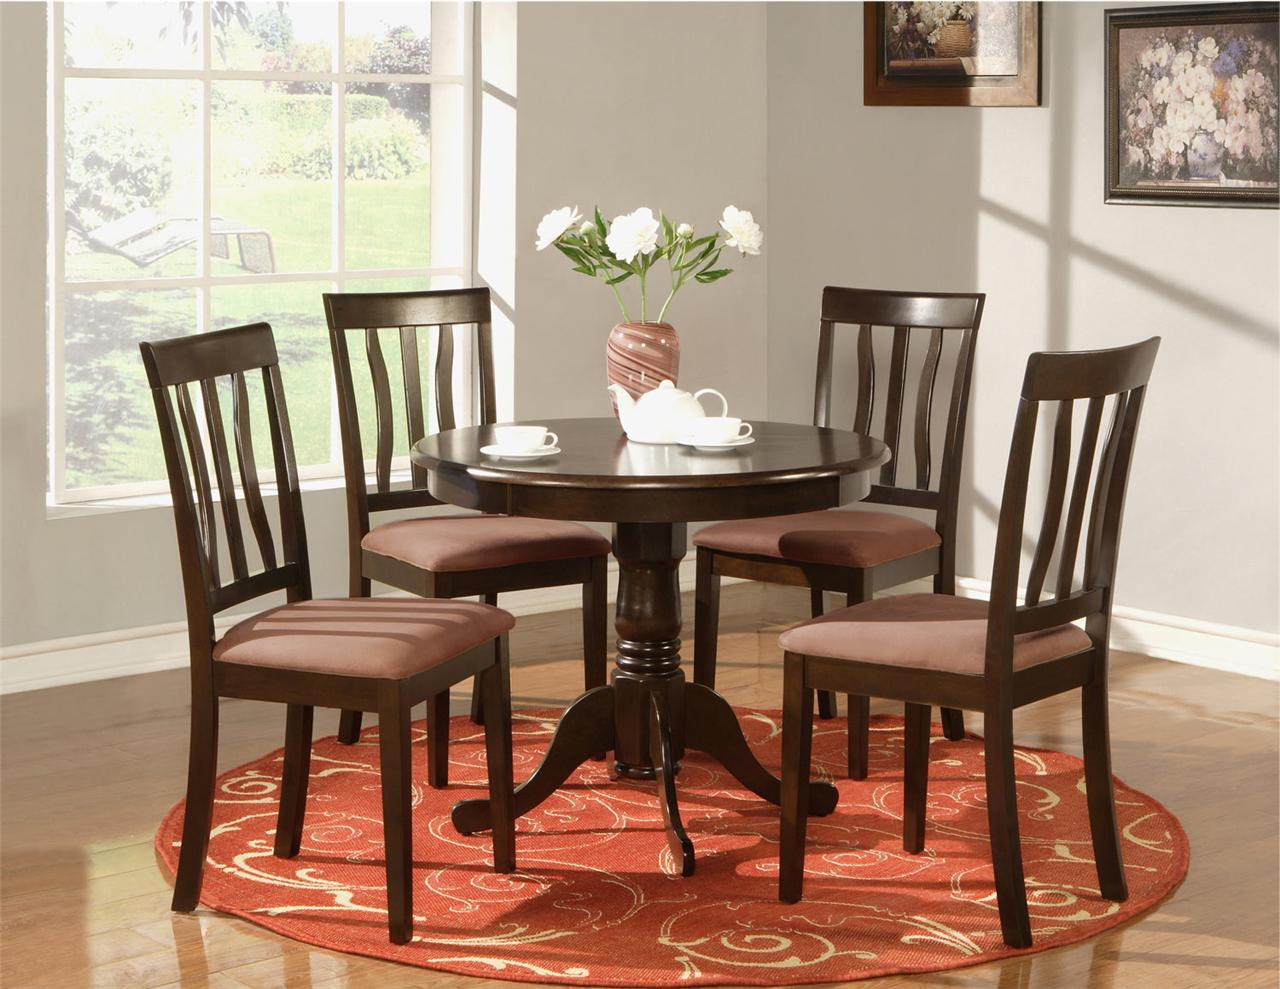 5 PC ROUND TABLE DINETTE KITCHEN TABLE AND 4 CHAIRS | eBay